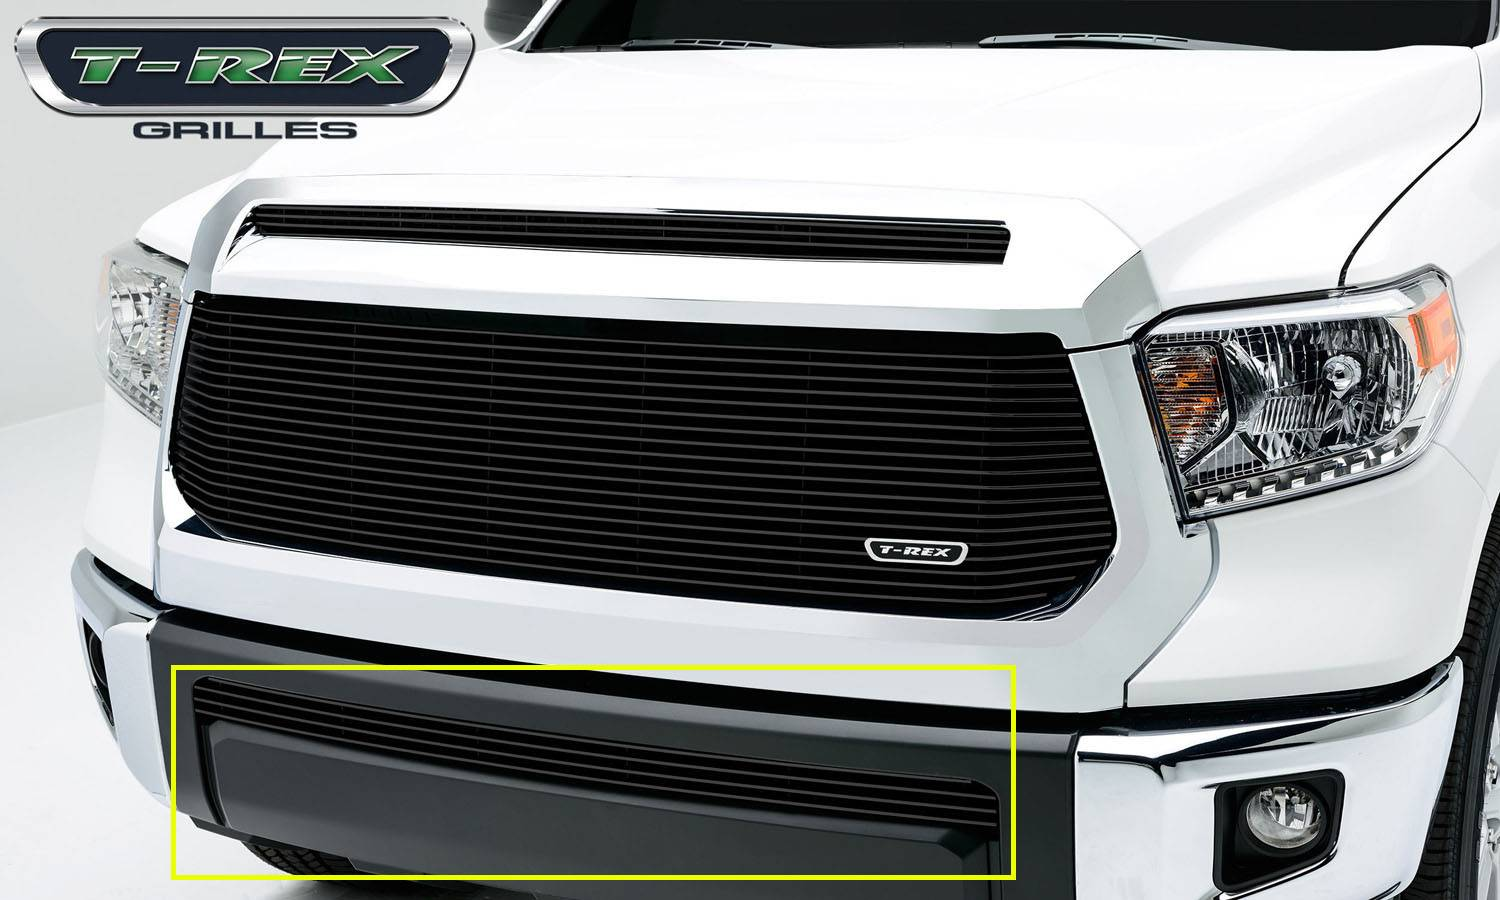 T-REX Toyota Tundra  Billet Grille, Bumper, Overlay, 1 Pc, Black Powdercoated Aluminum Bars - Pt # 25964B